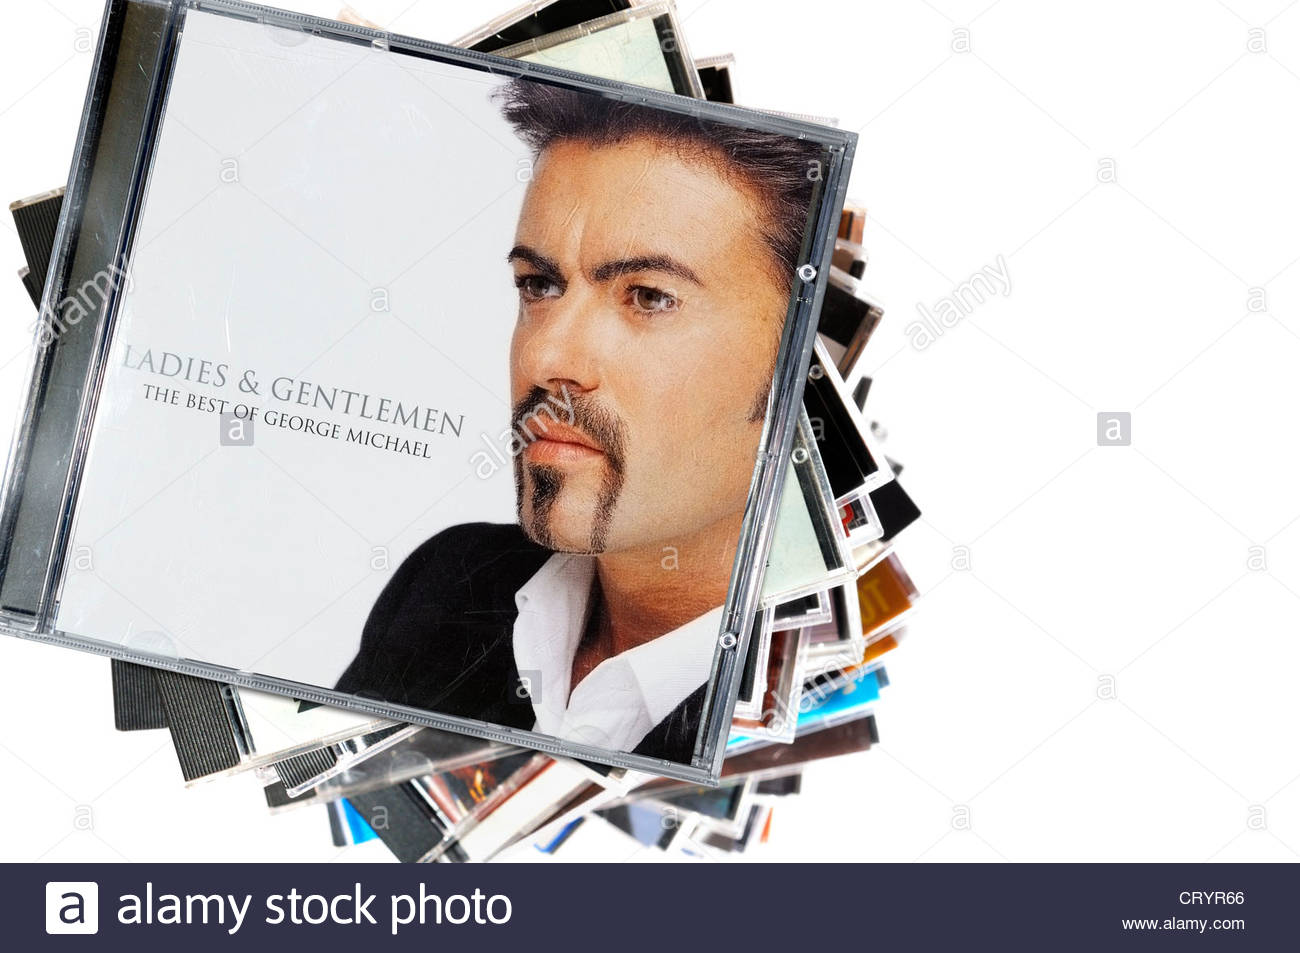 George Michael Ladies And Gentlemen